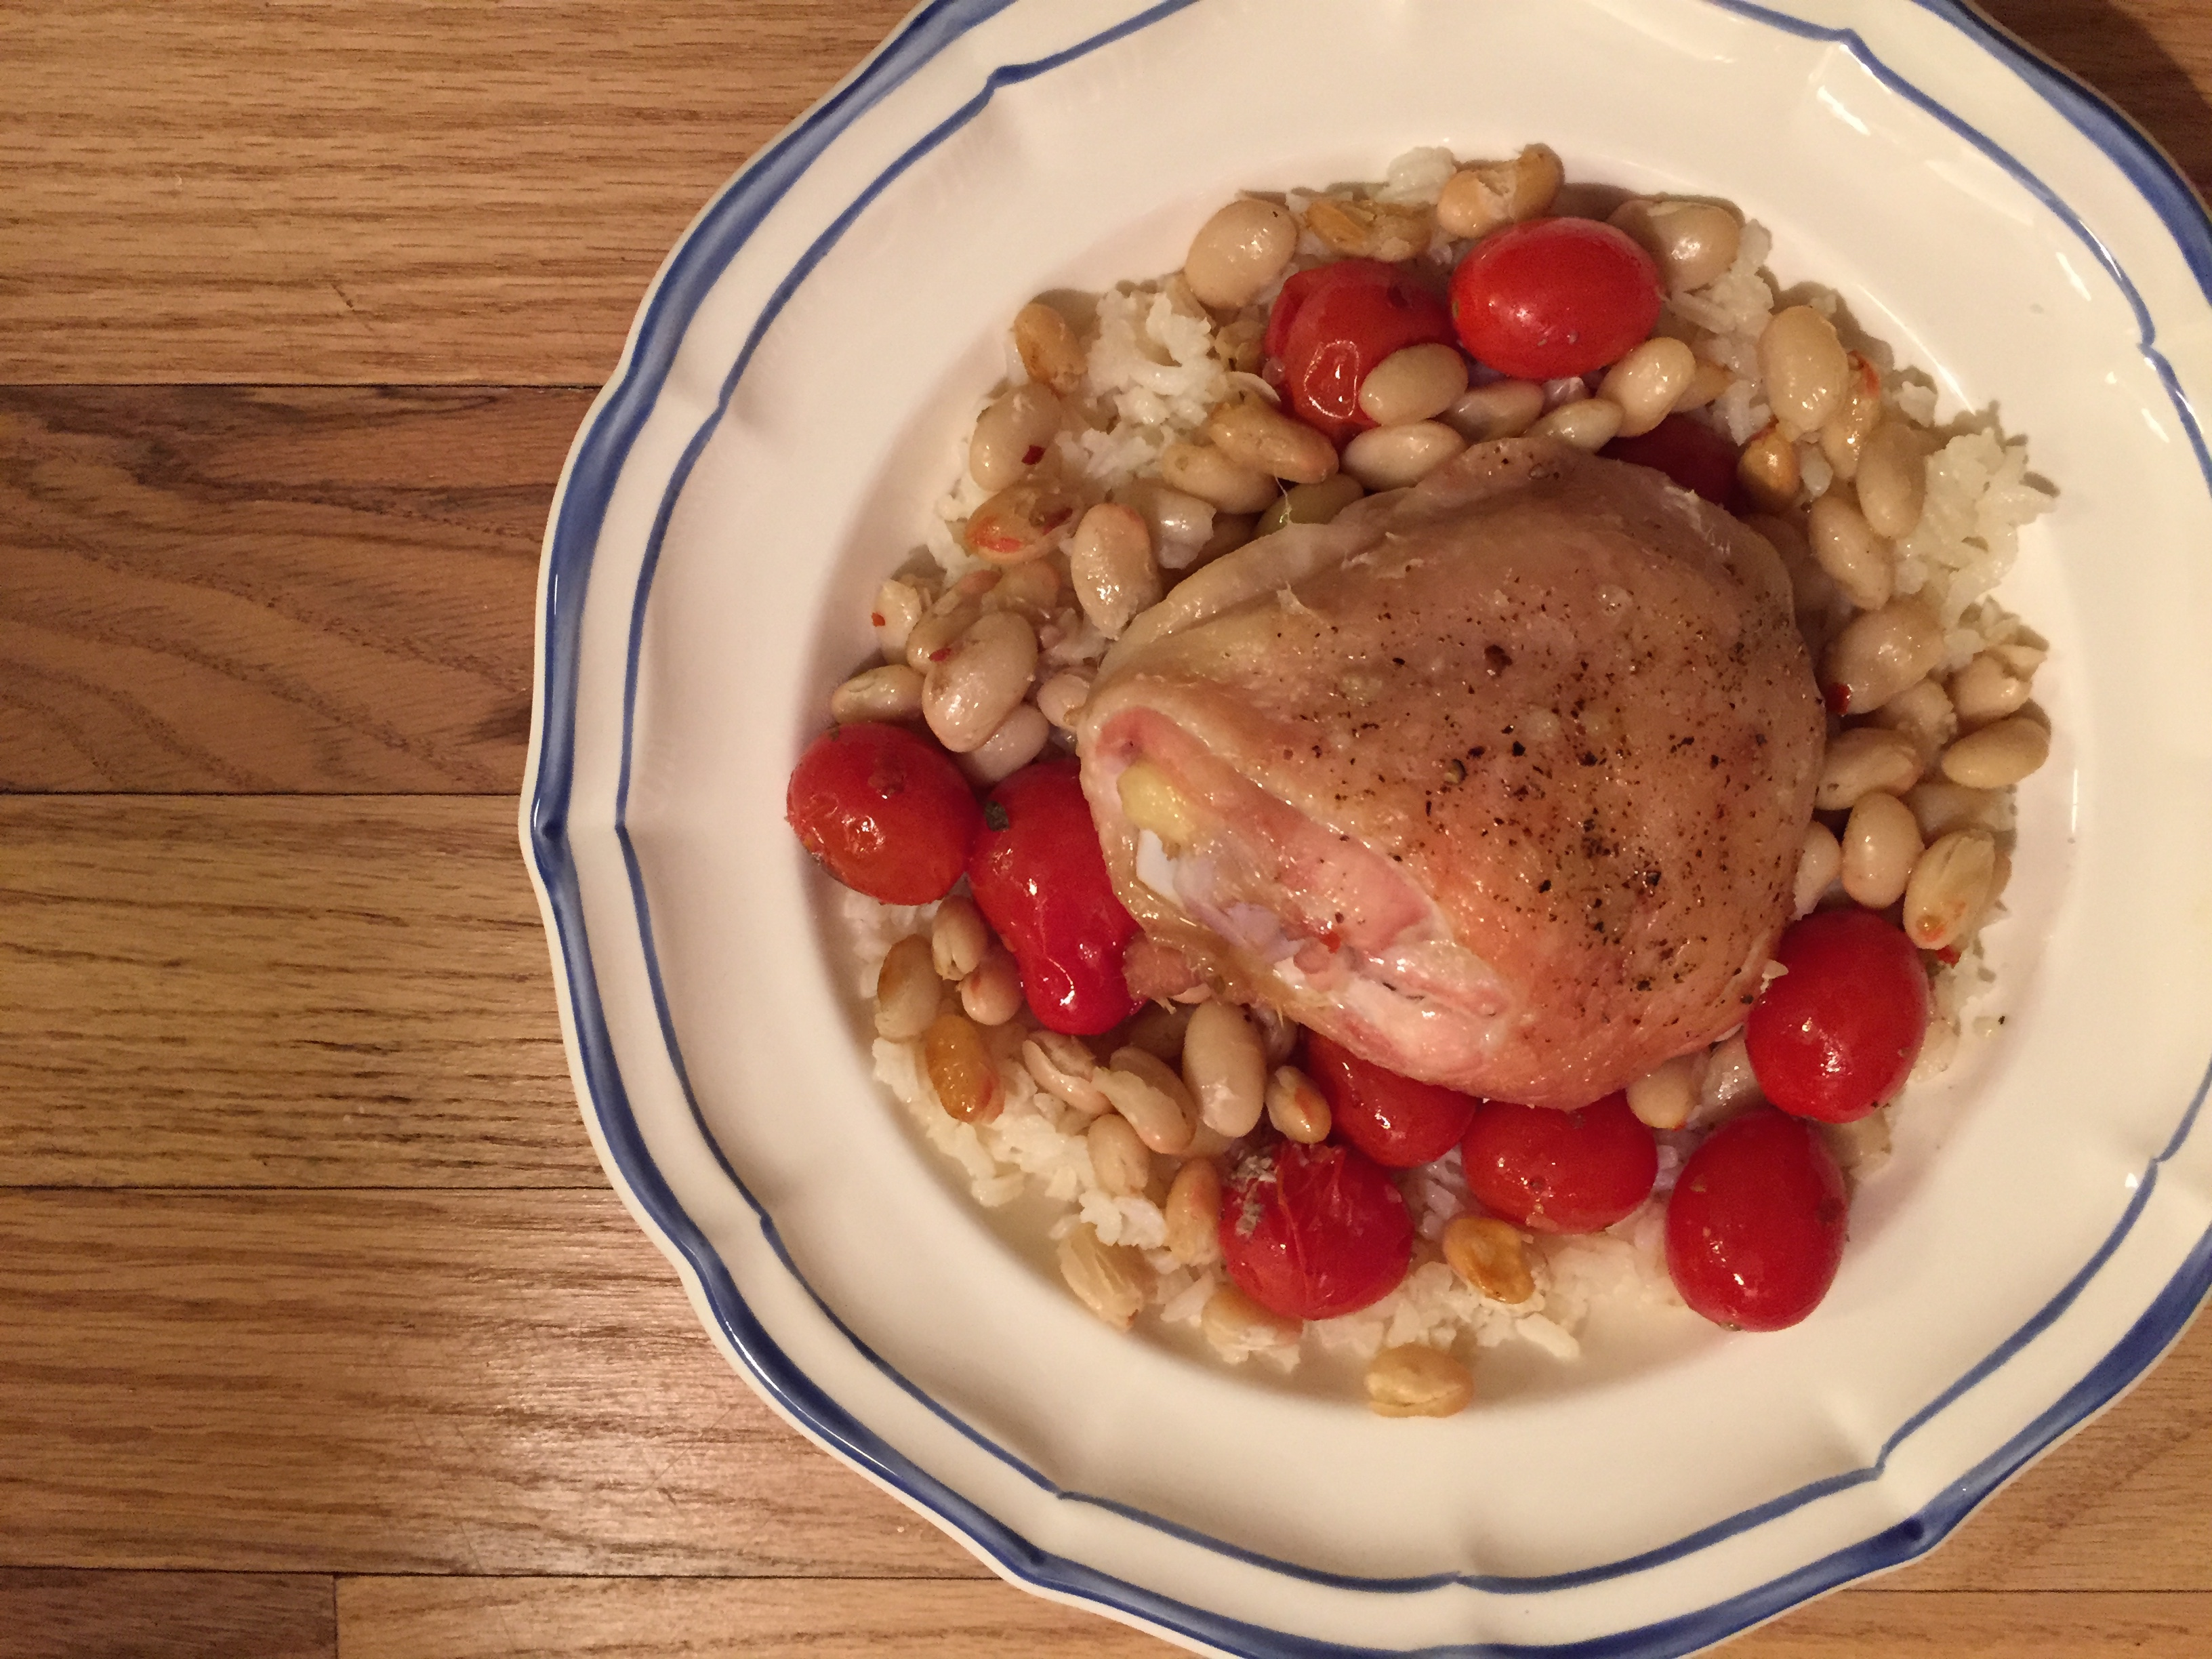 Roasted Chicken with Cannellini Beans and Tomatoes over Rice